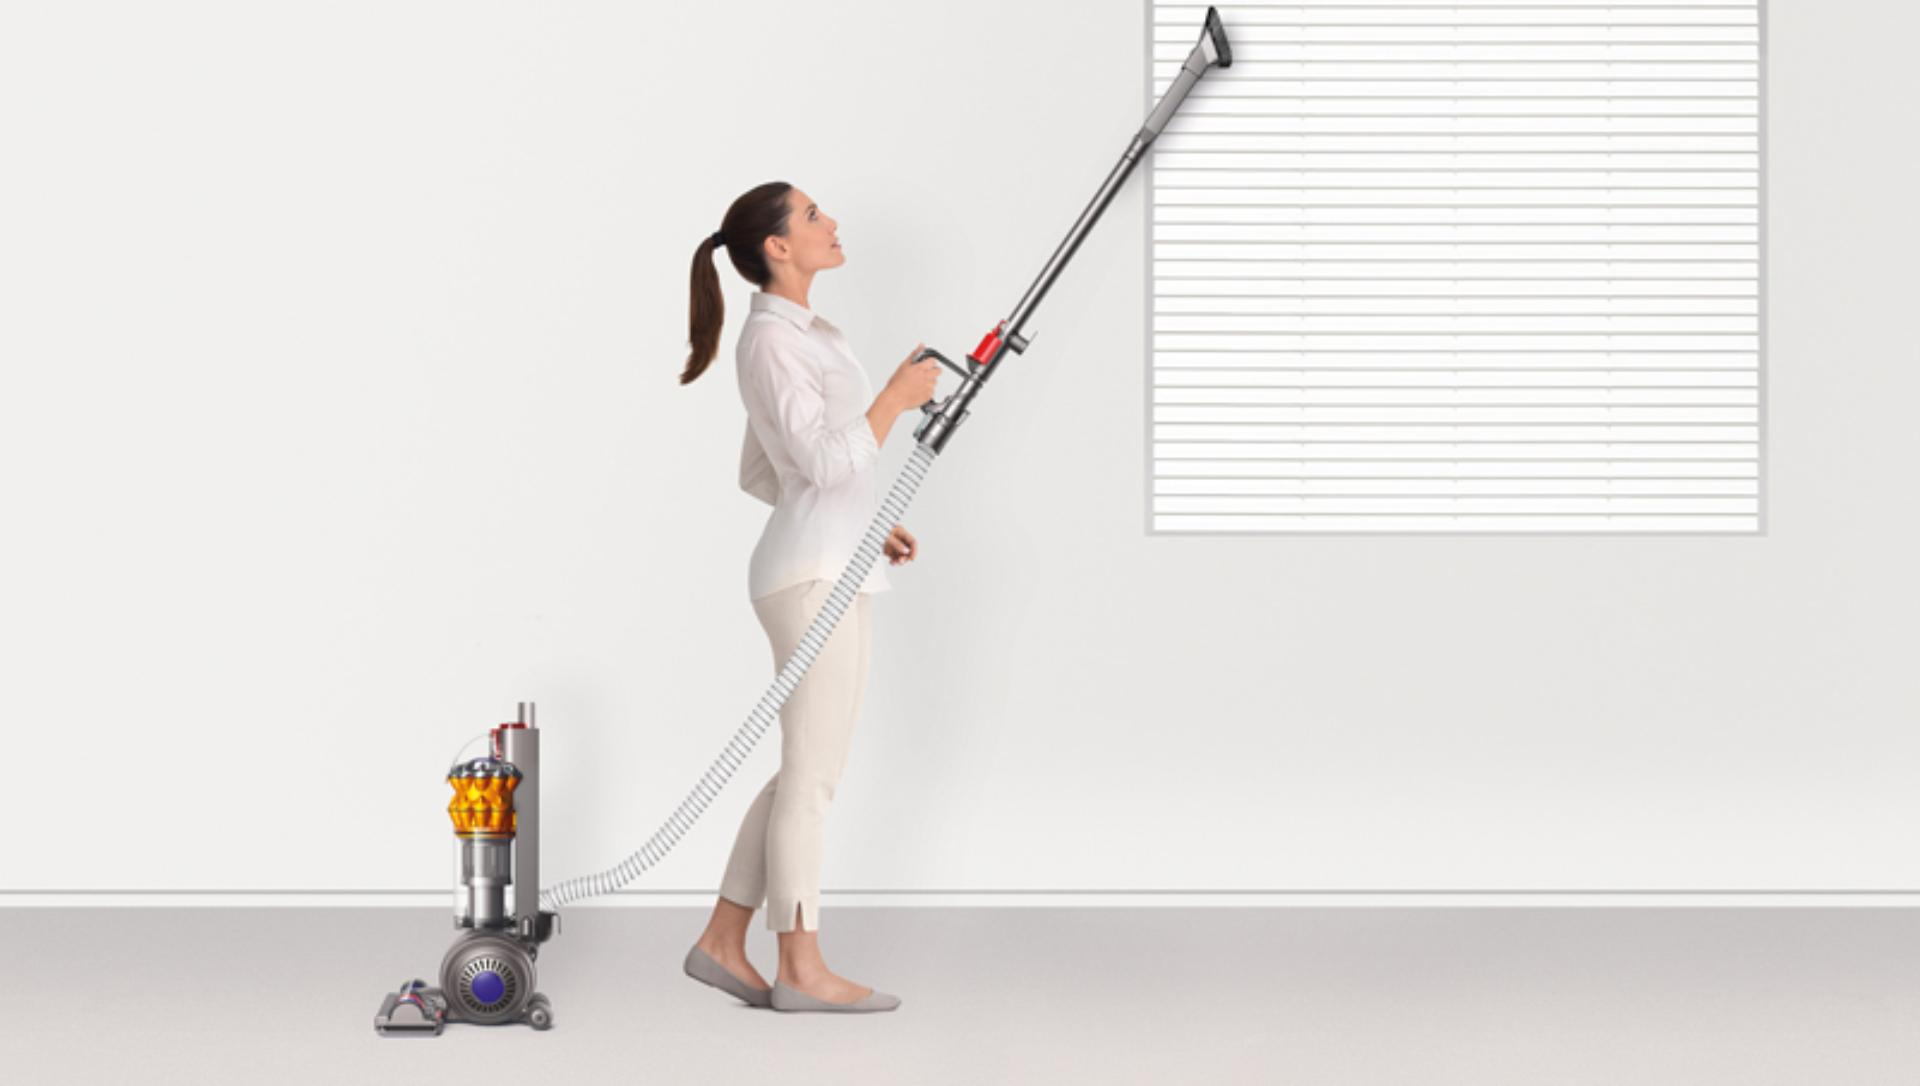 The Dyson Small Ball vacuum's extended hose, wand and cable length gives you the ability to clean even more space even with a compact machine.